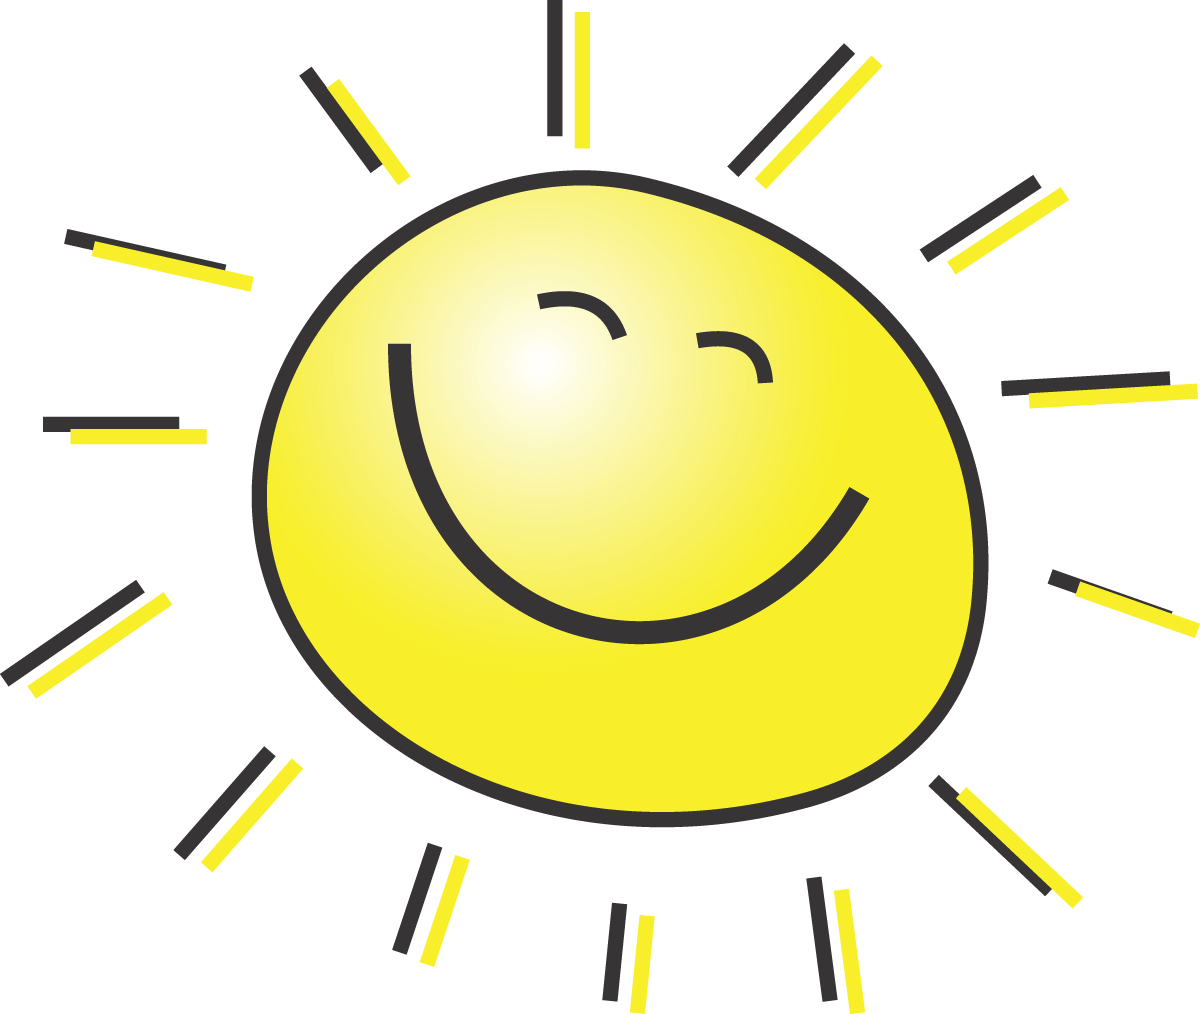 https://i2.wp.com/free.clipartof.com/5-Free-Summer-Clipart-Illustration-Of-A-Happy-Smiling-Sun.jpg